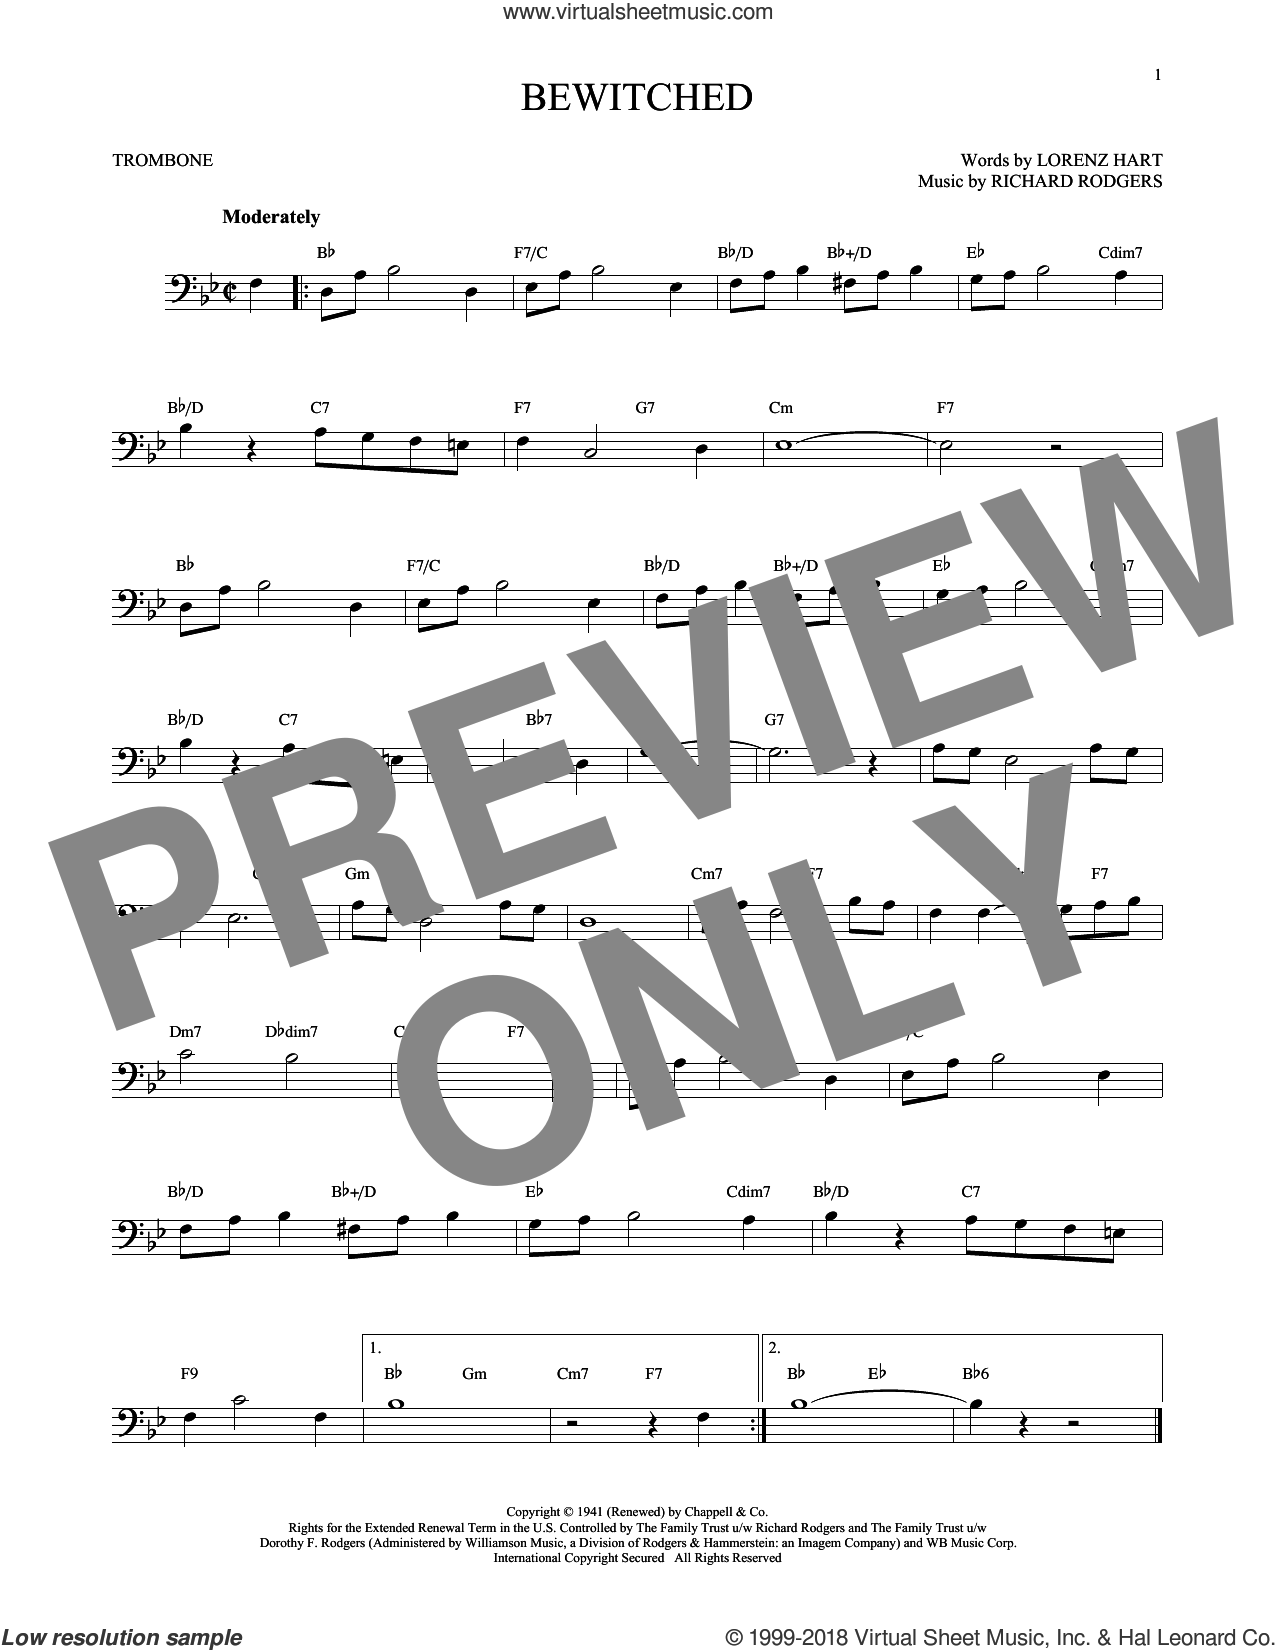 Bewitched sheet music for trombone solo by Rodgers & Hart, Betty Smith Group, Lorenz Hart and Richard Rodgers, intermediate skill level